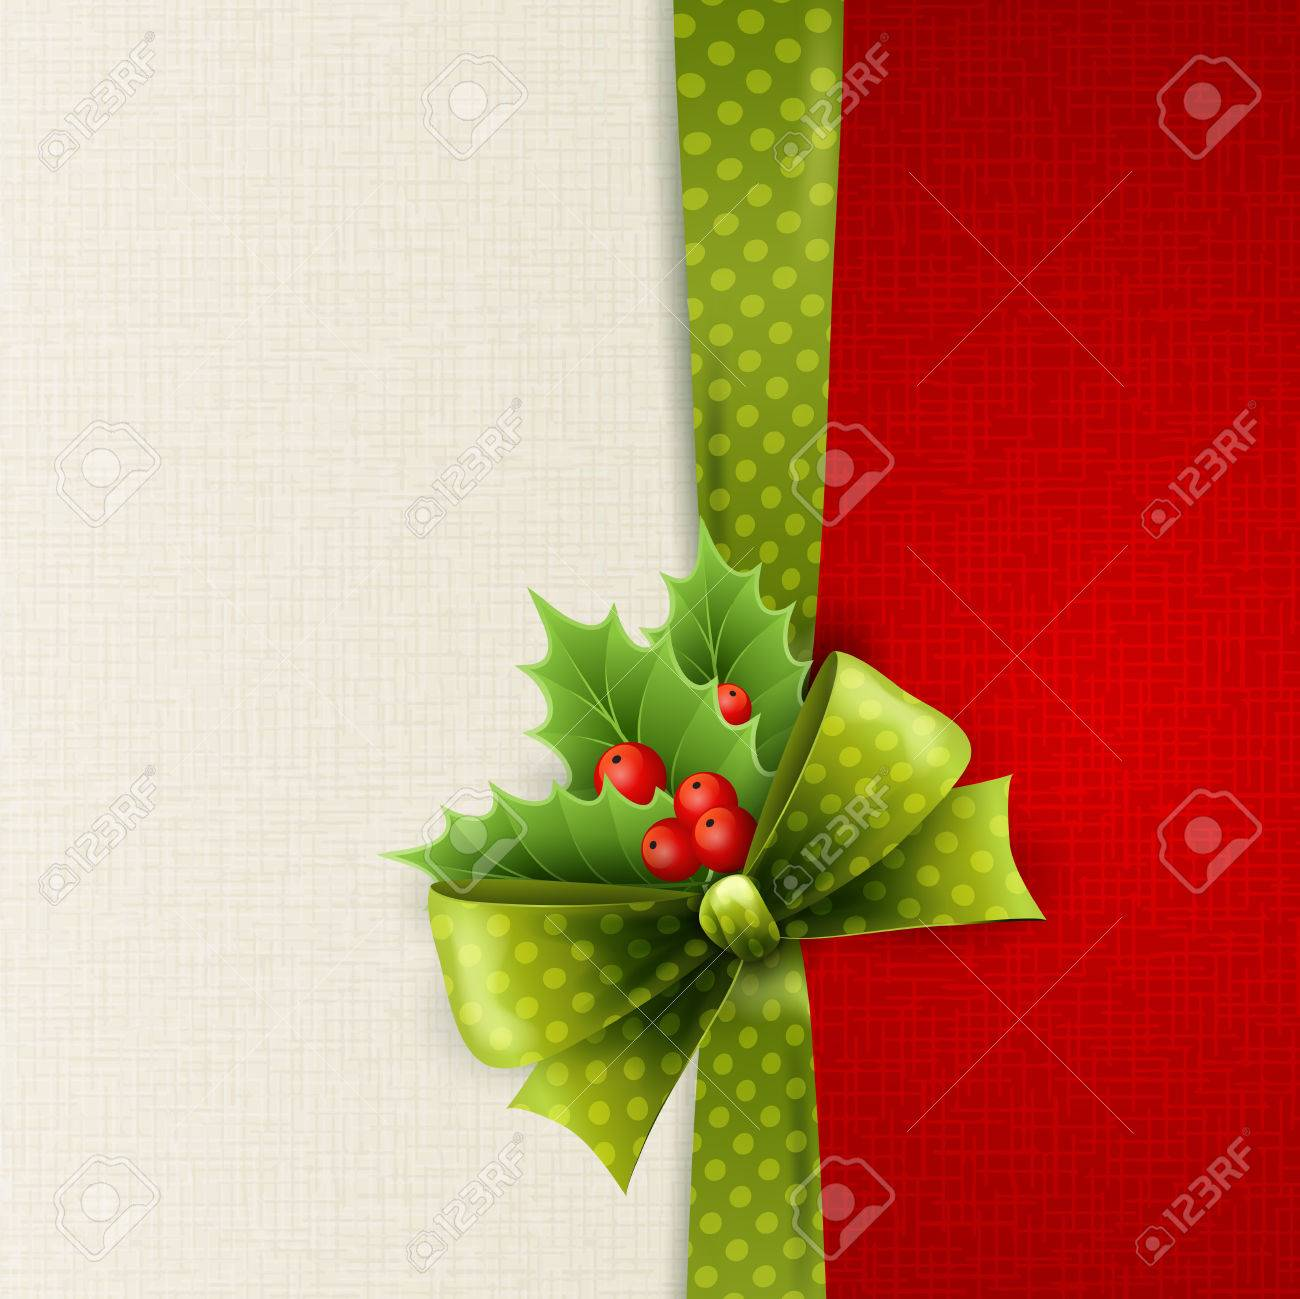 Vector Christmas card with green polka dots bow and holly Stock Vector - 23650619